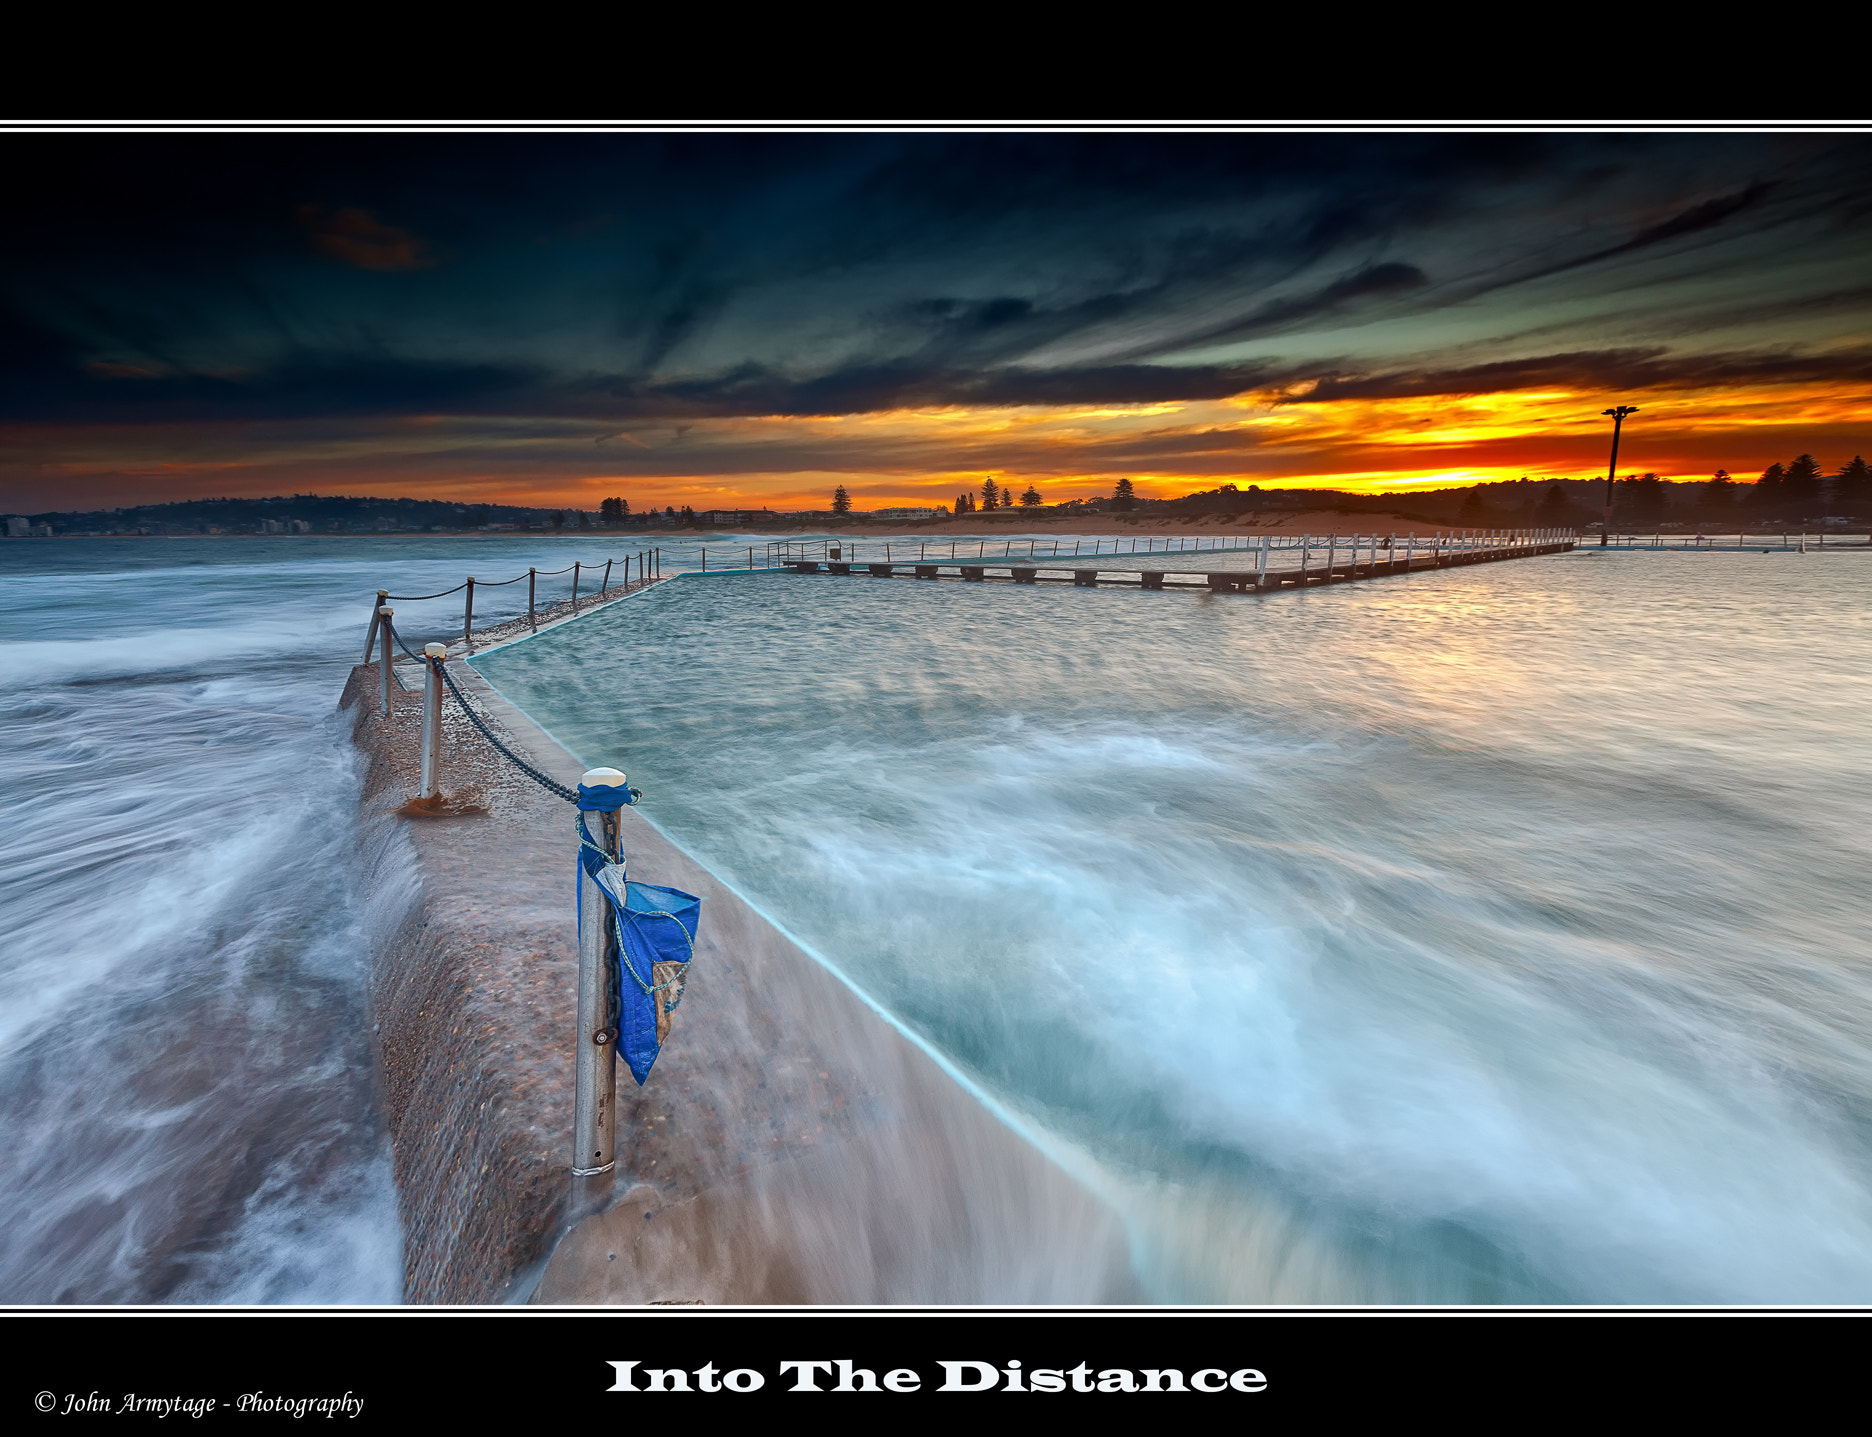 Photograph Into The Distance by John Armytage on 500px